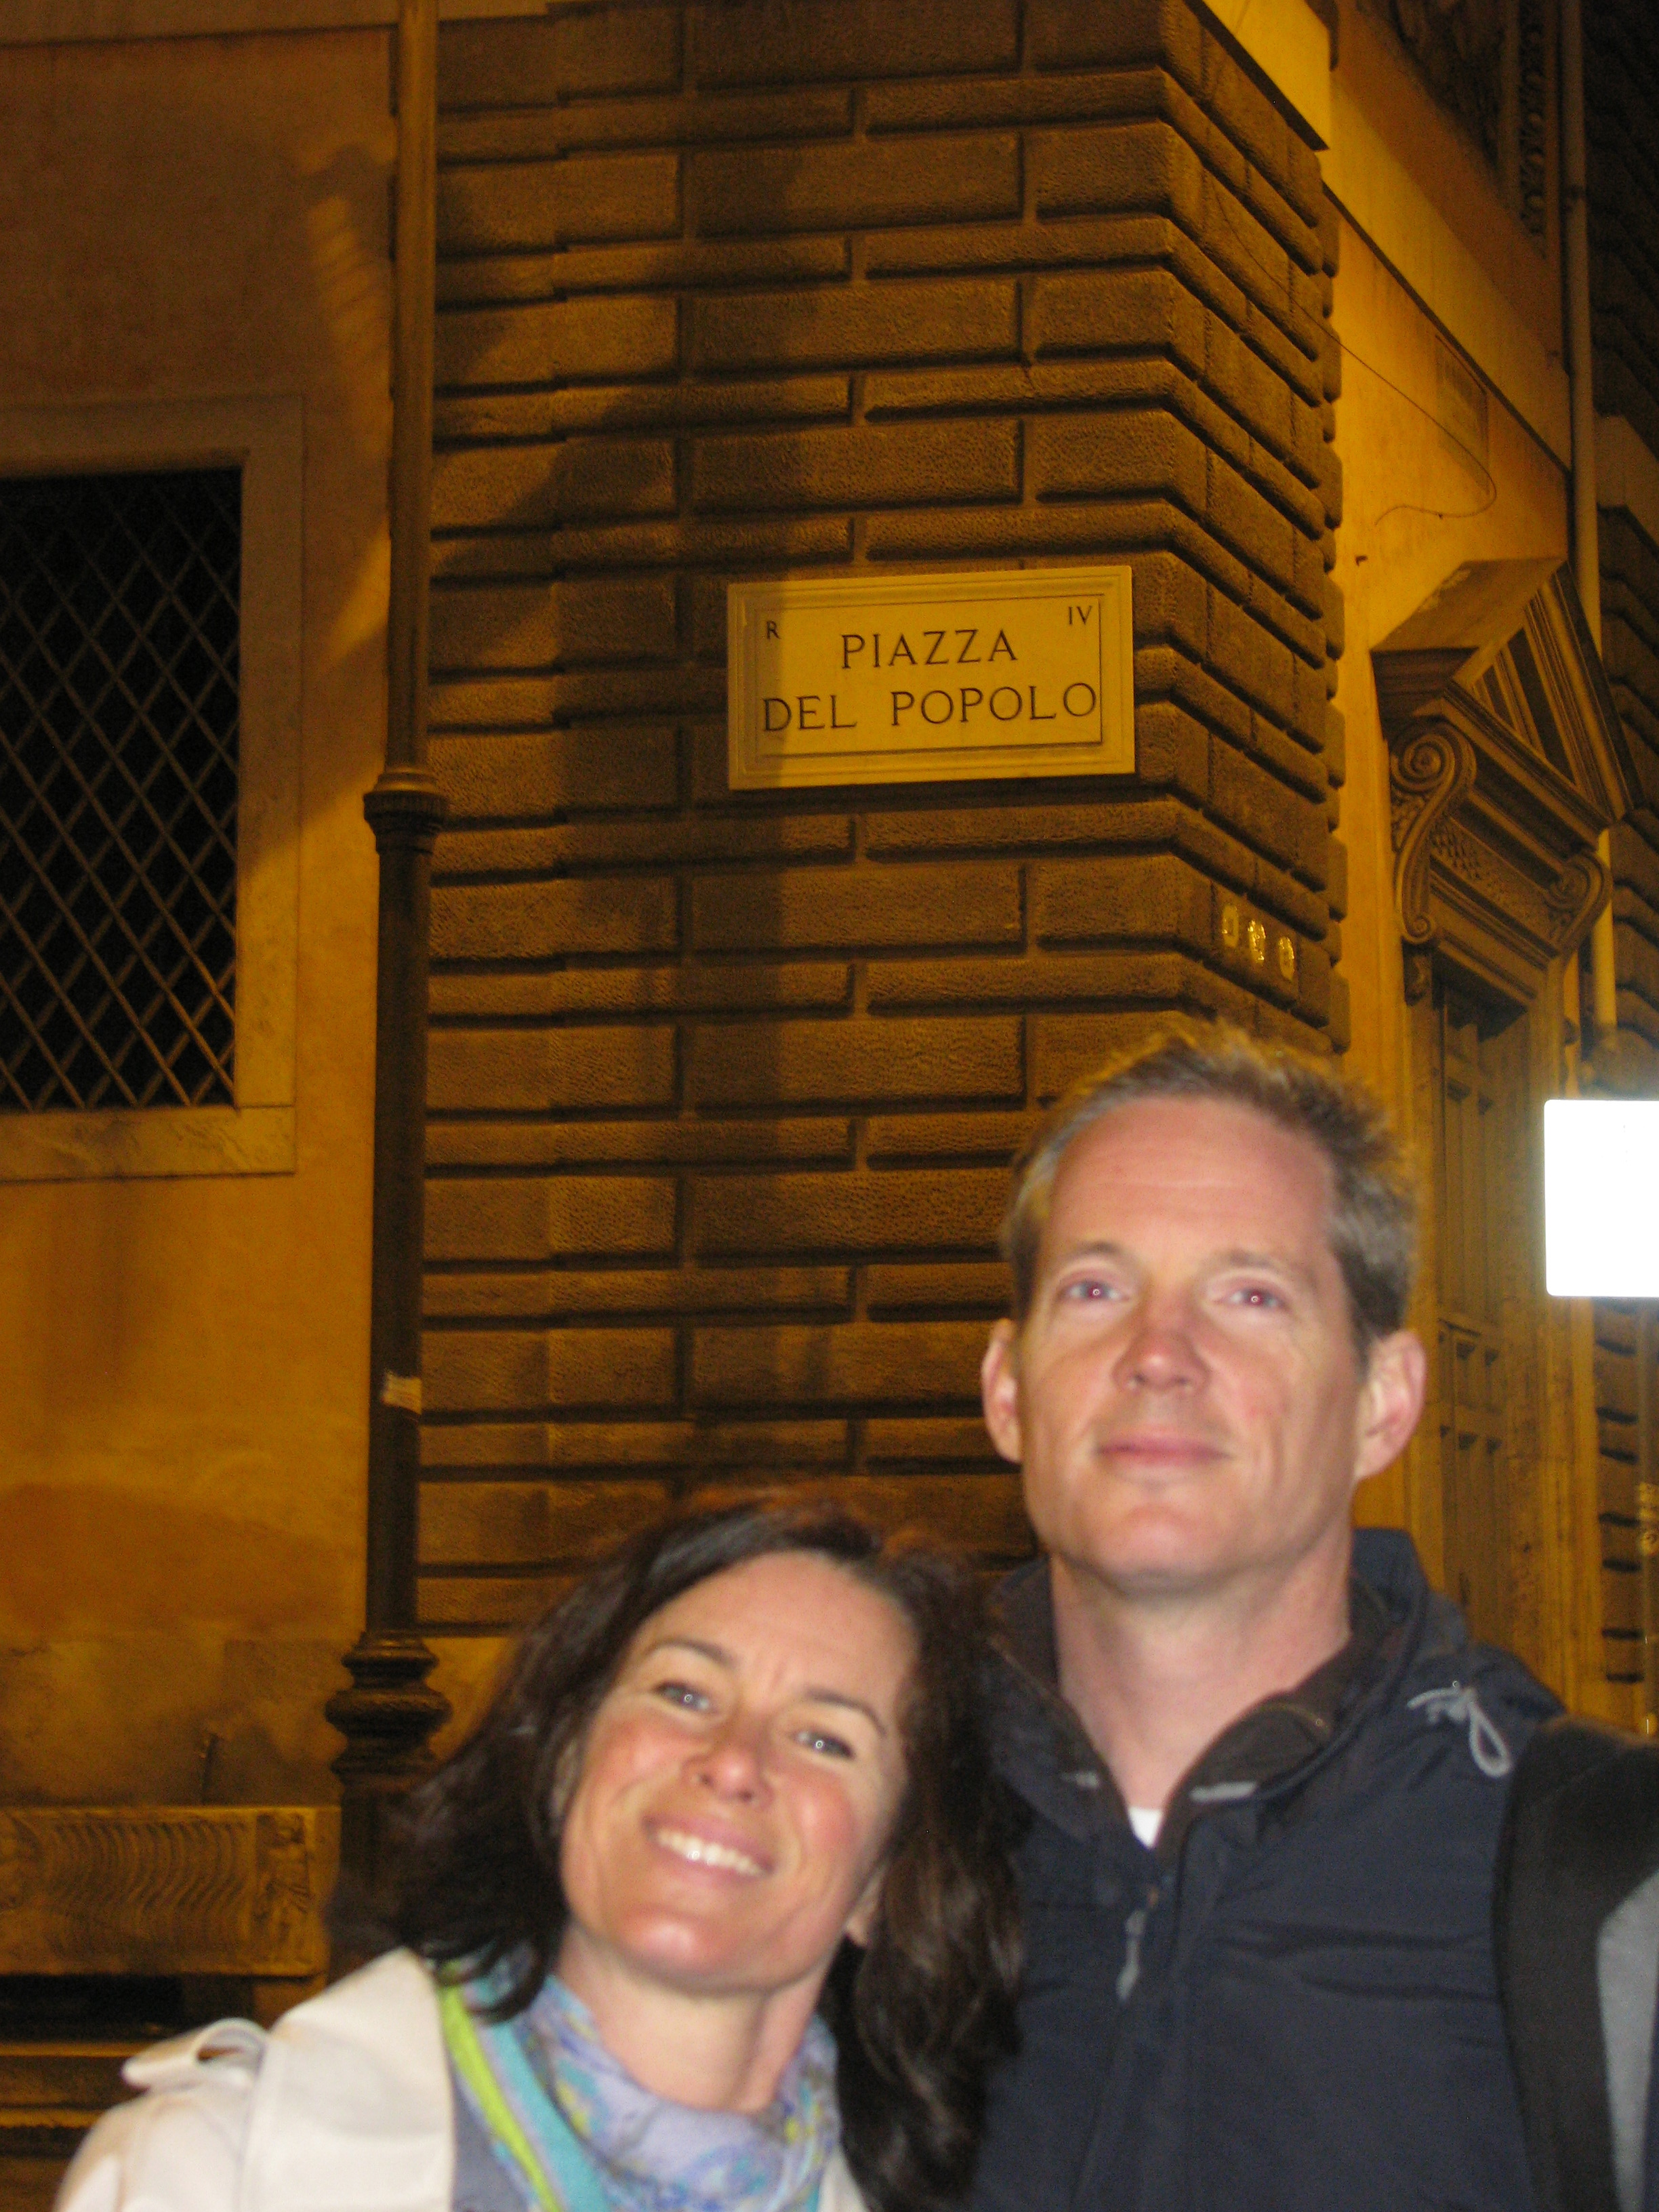 Laura and Tom at Piazza del Popolo